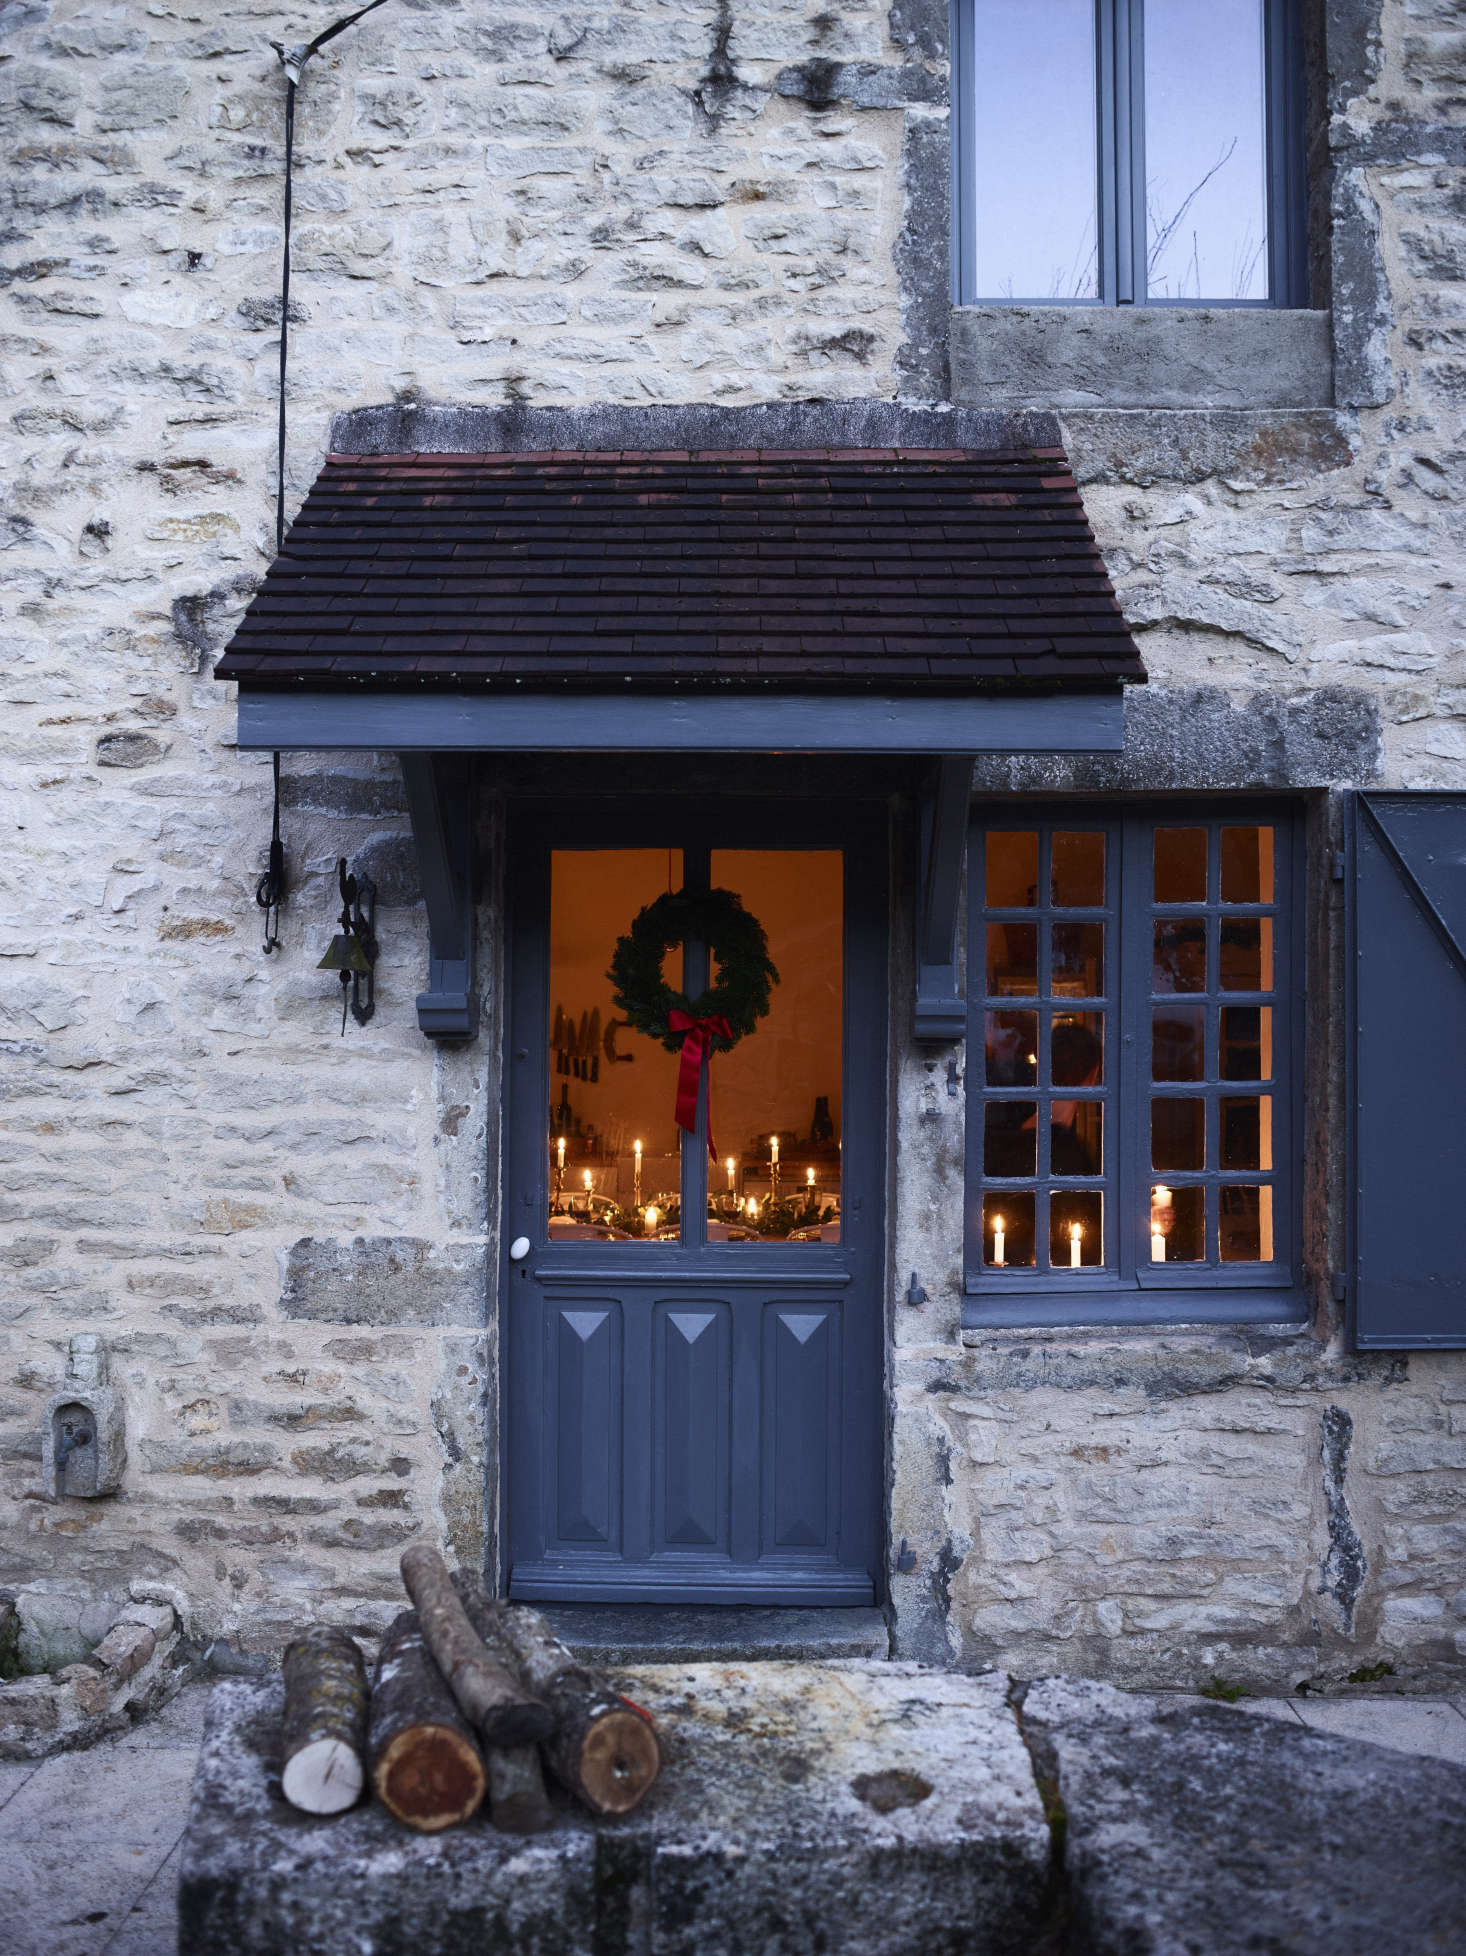 Simple Christmas Decor In Burgundy France With The Cook